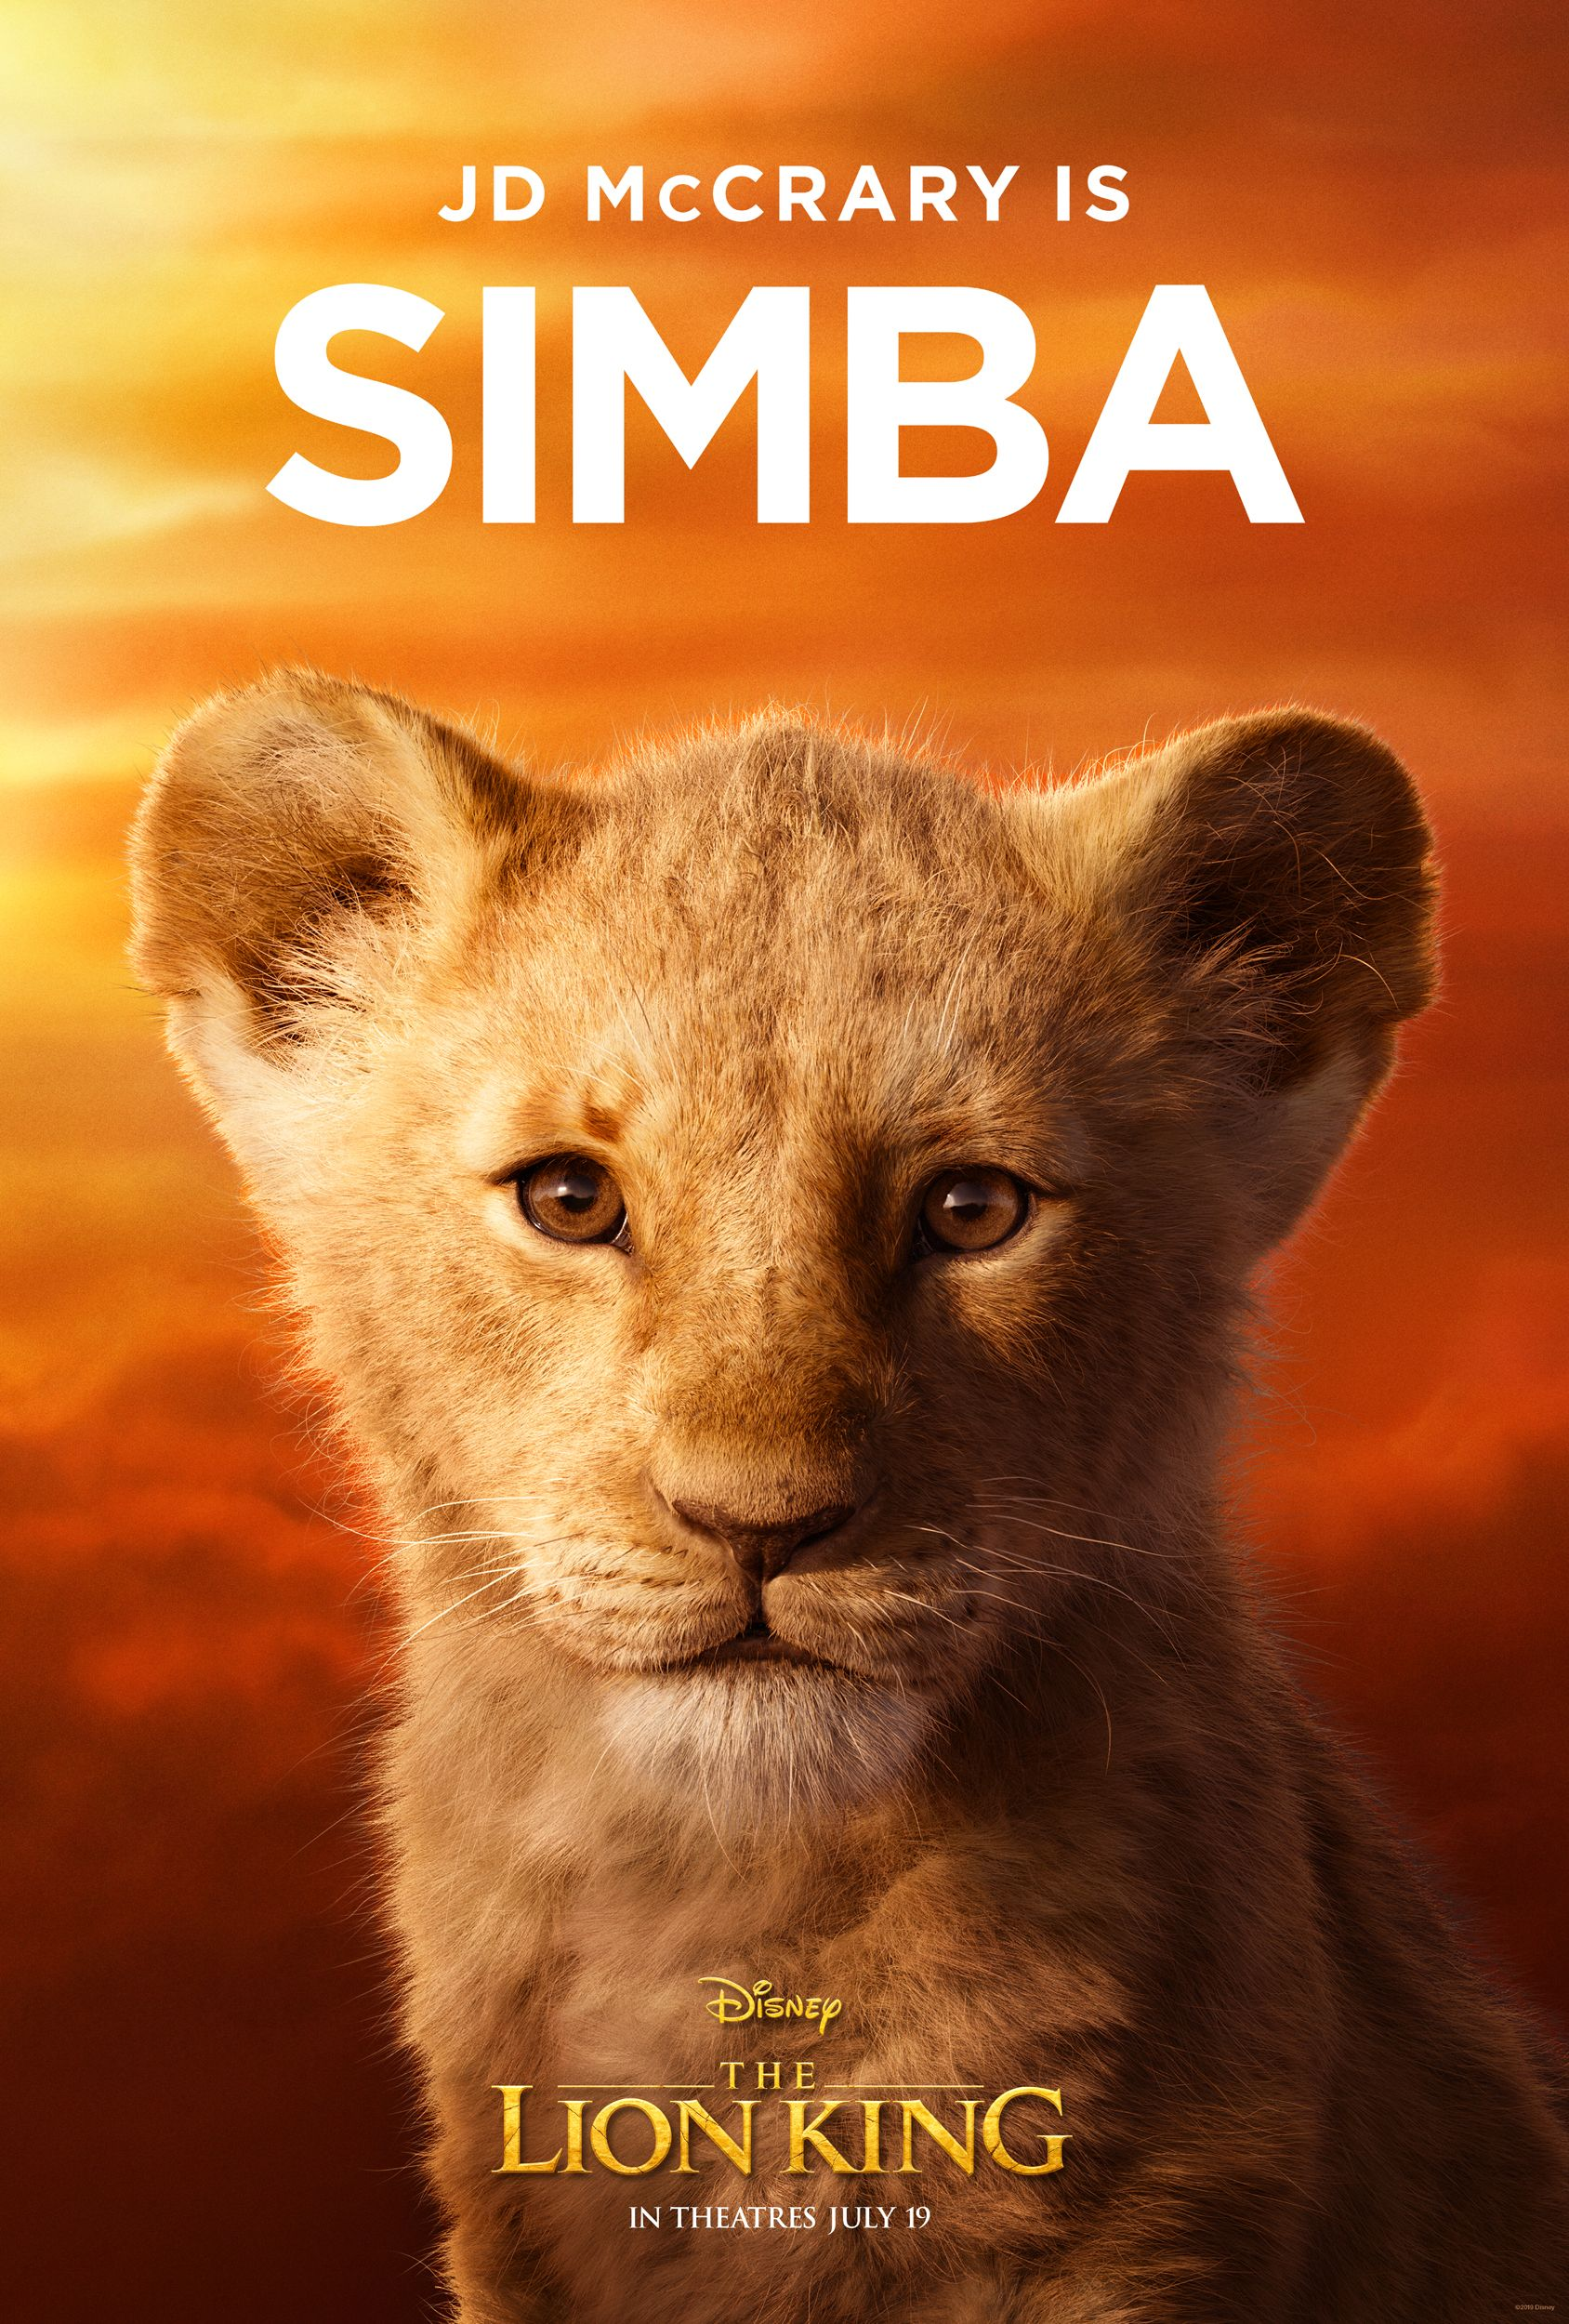 the lion king character posters reveal the full cast